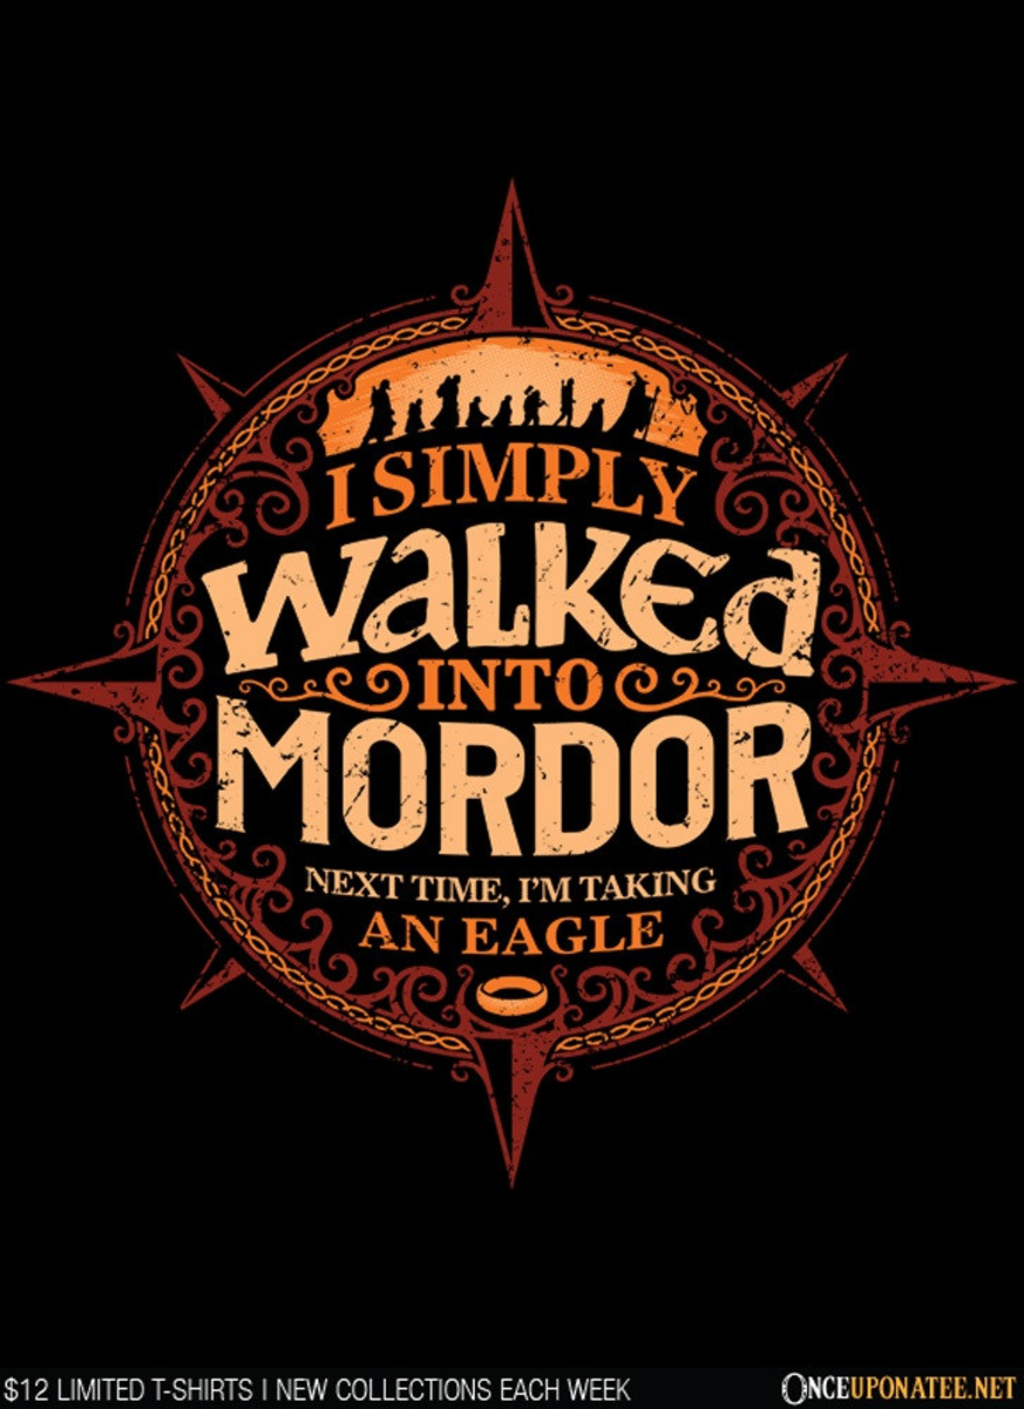 Once Upon a Tee: Walked into Mordor